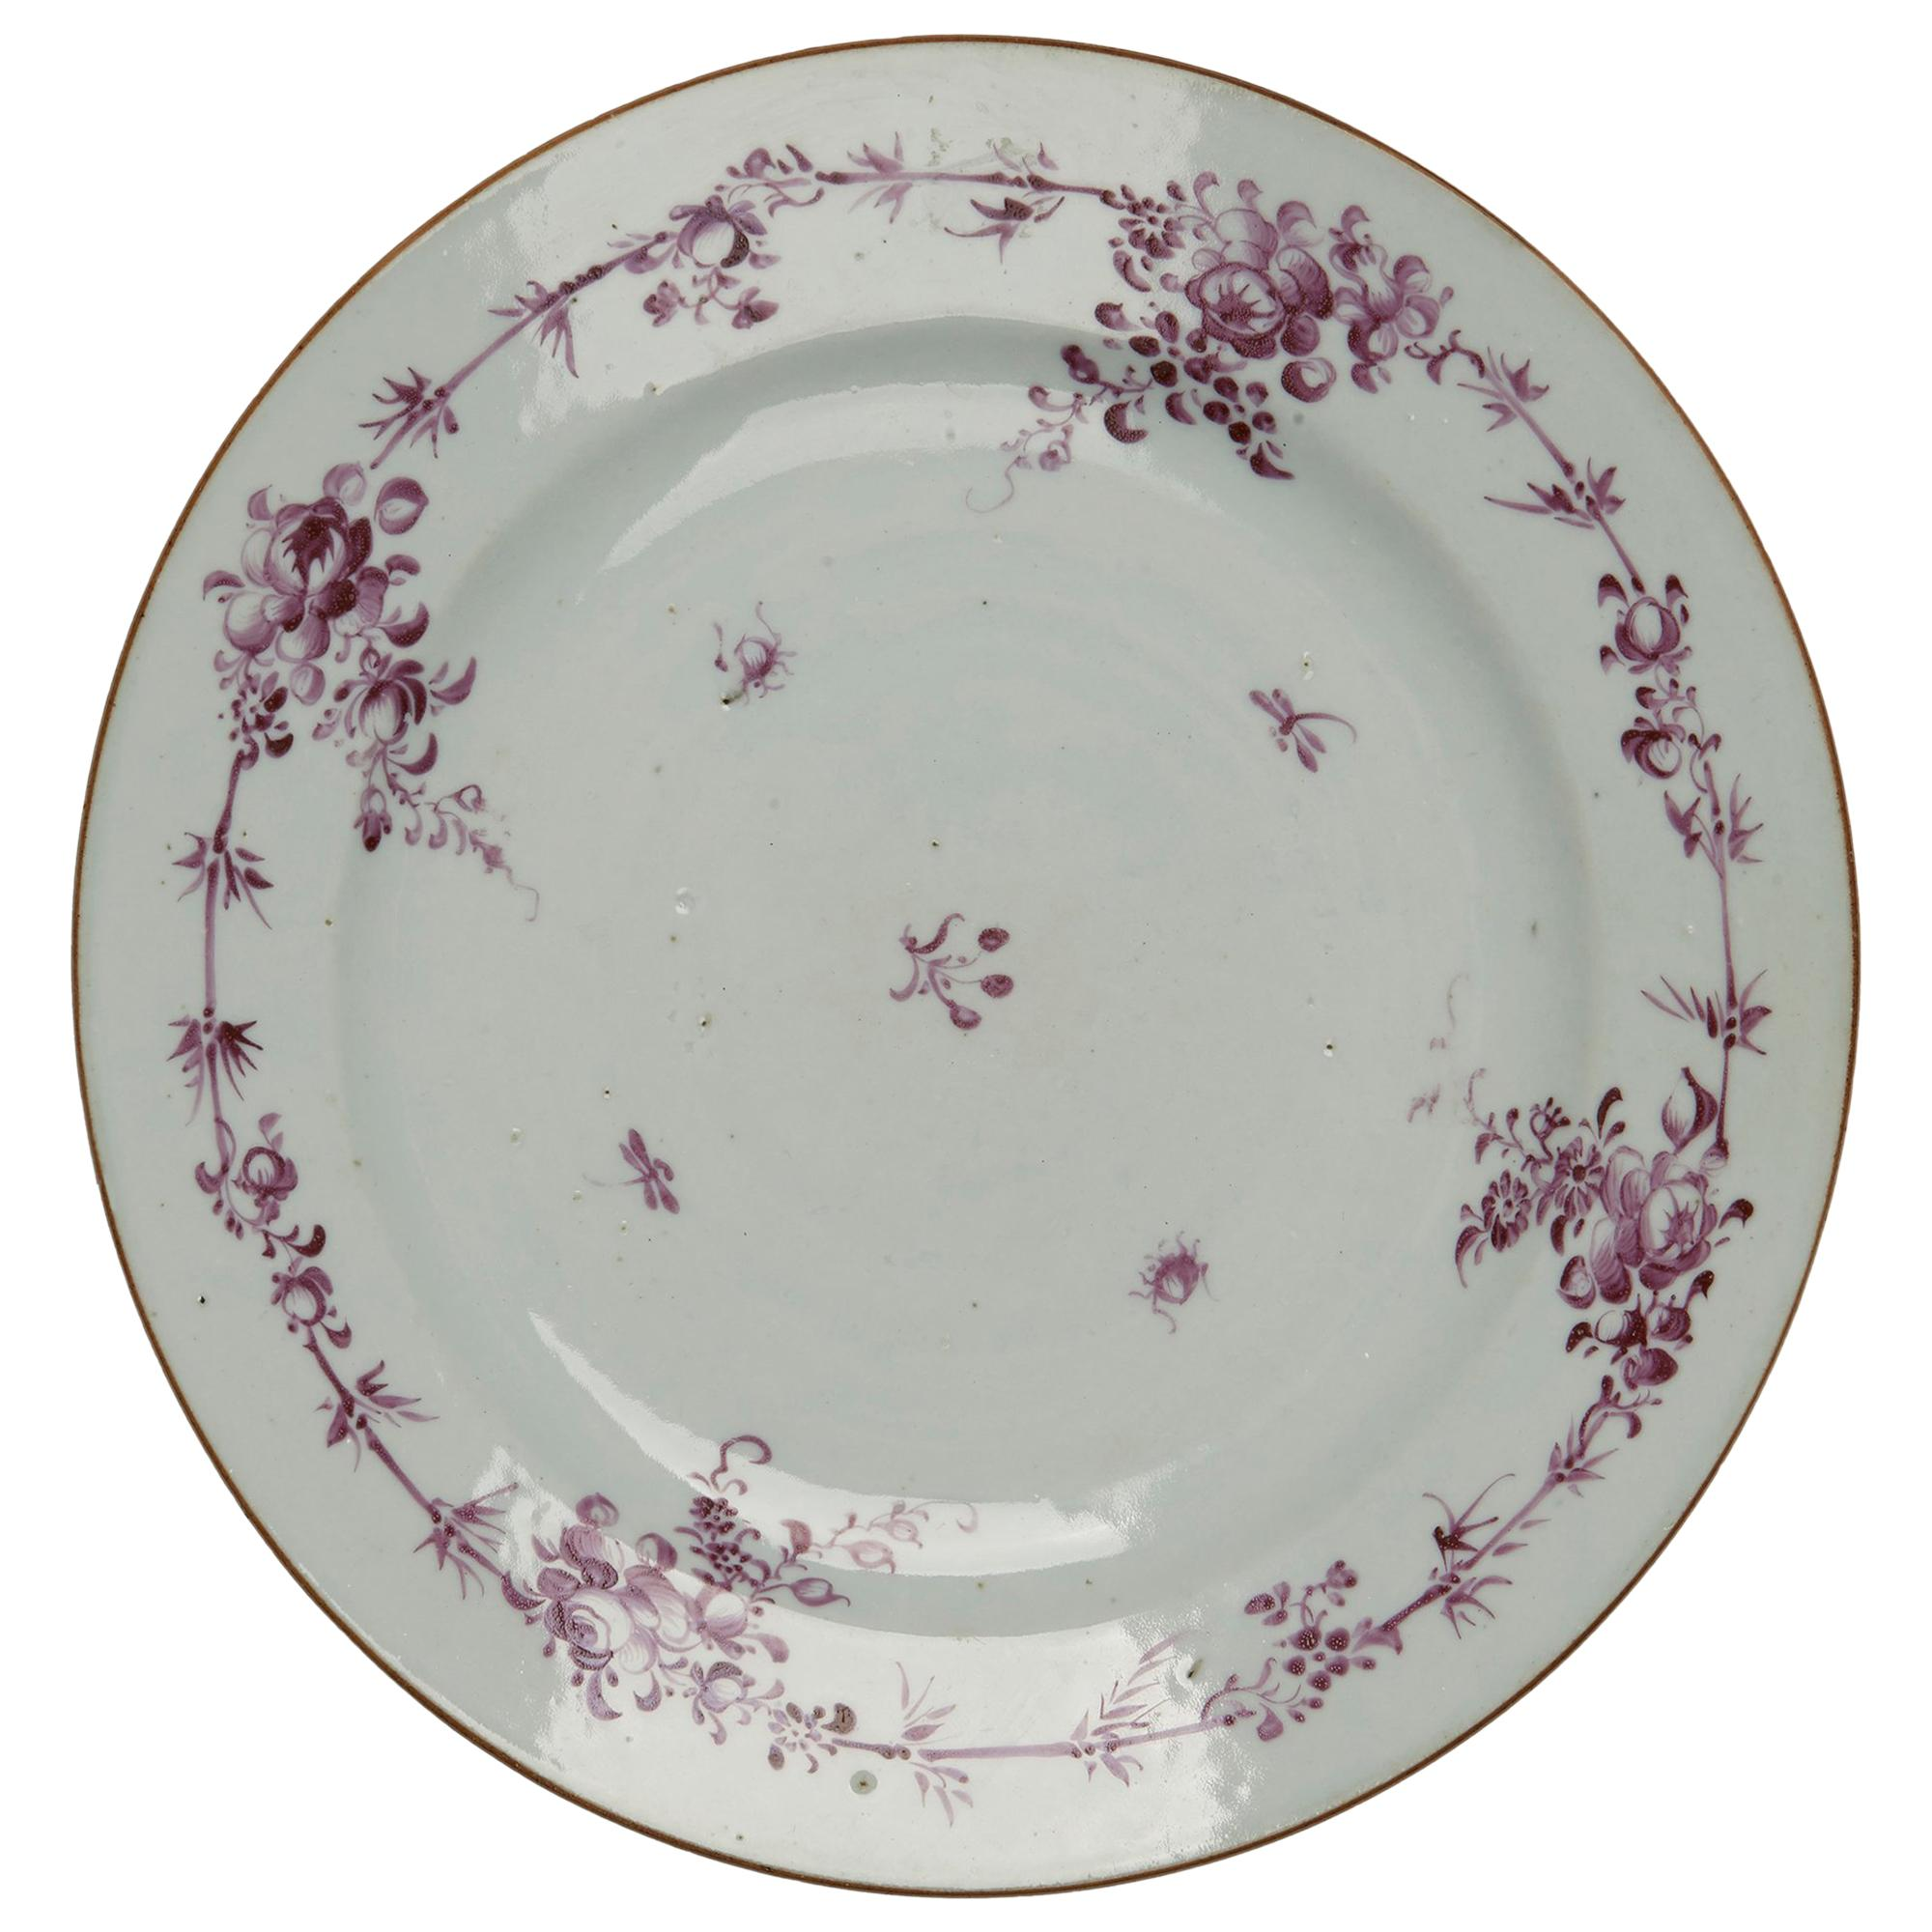 Chinese Qianlong Puce Decorated Porcelain Plate, 18th Century